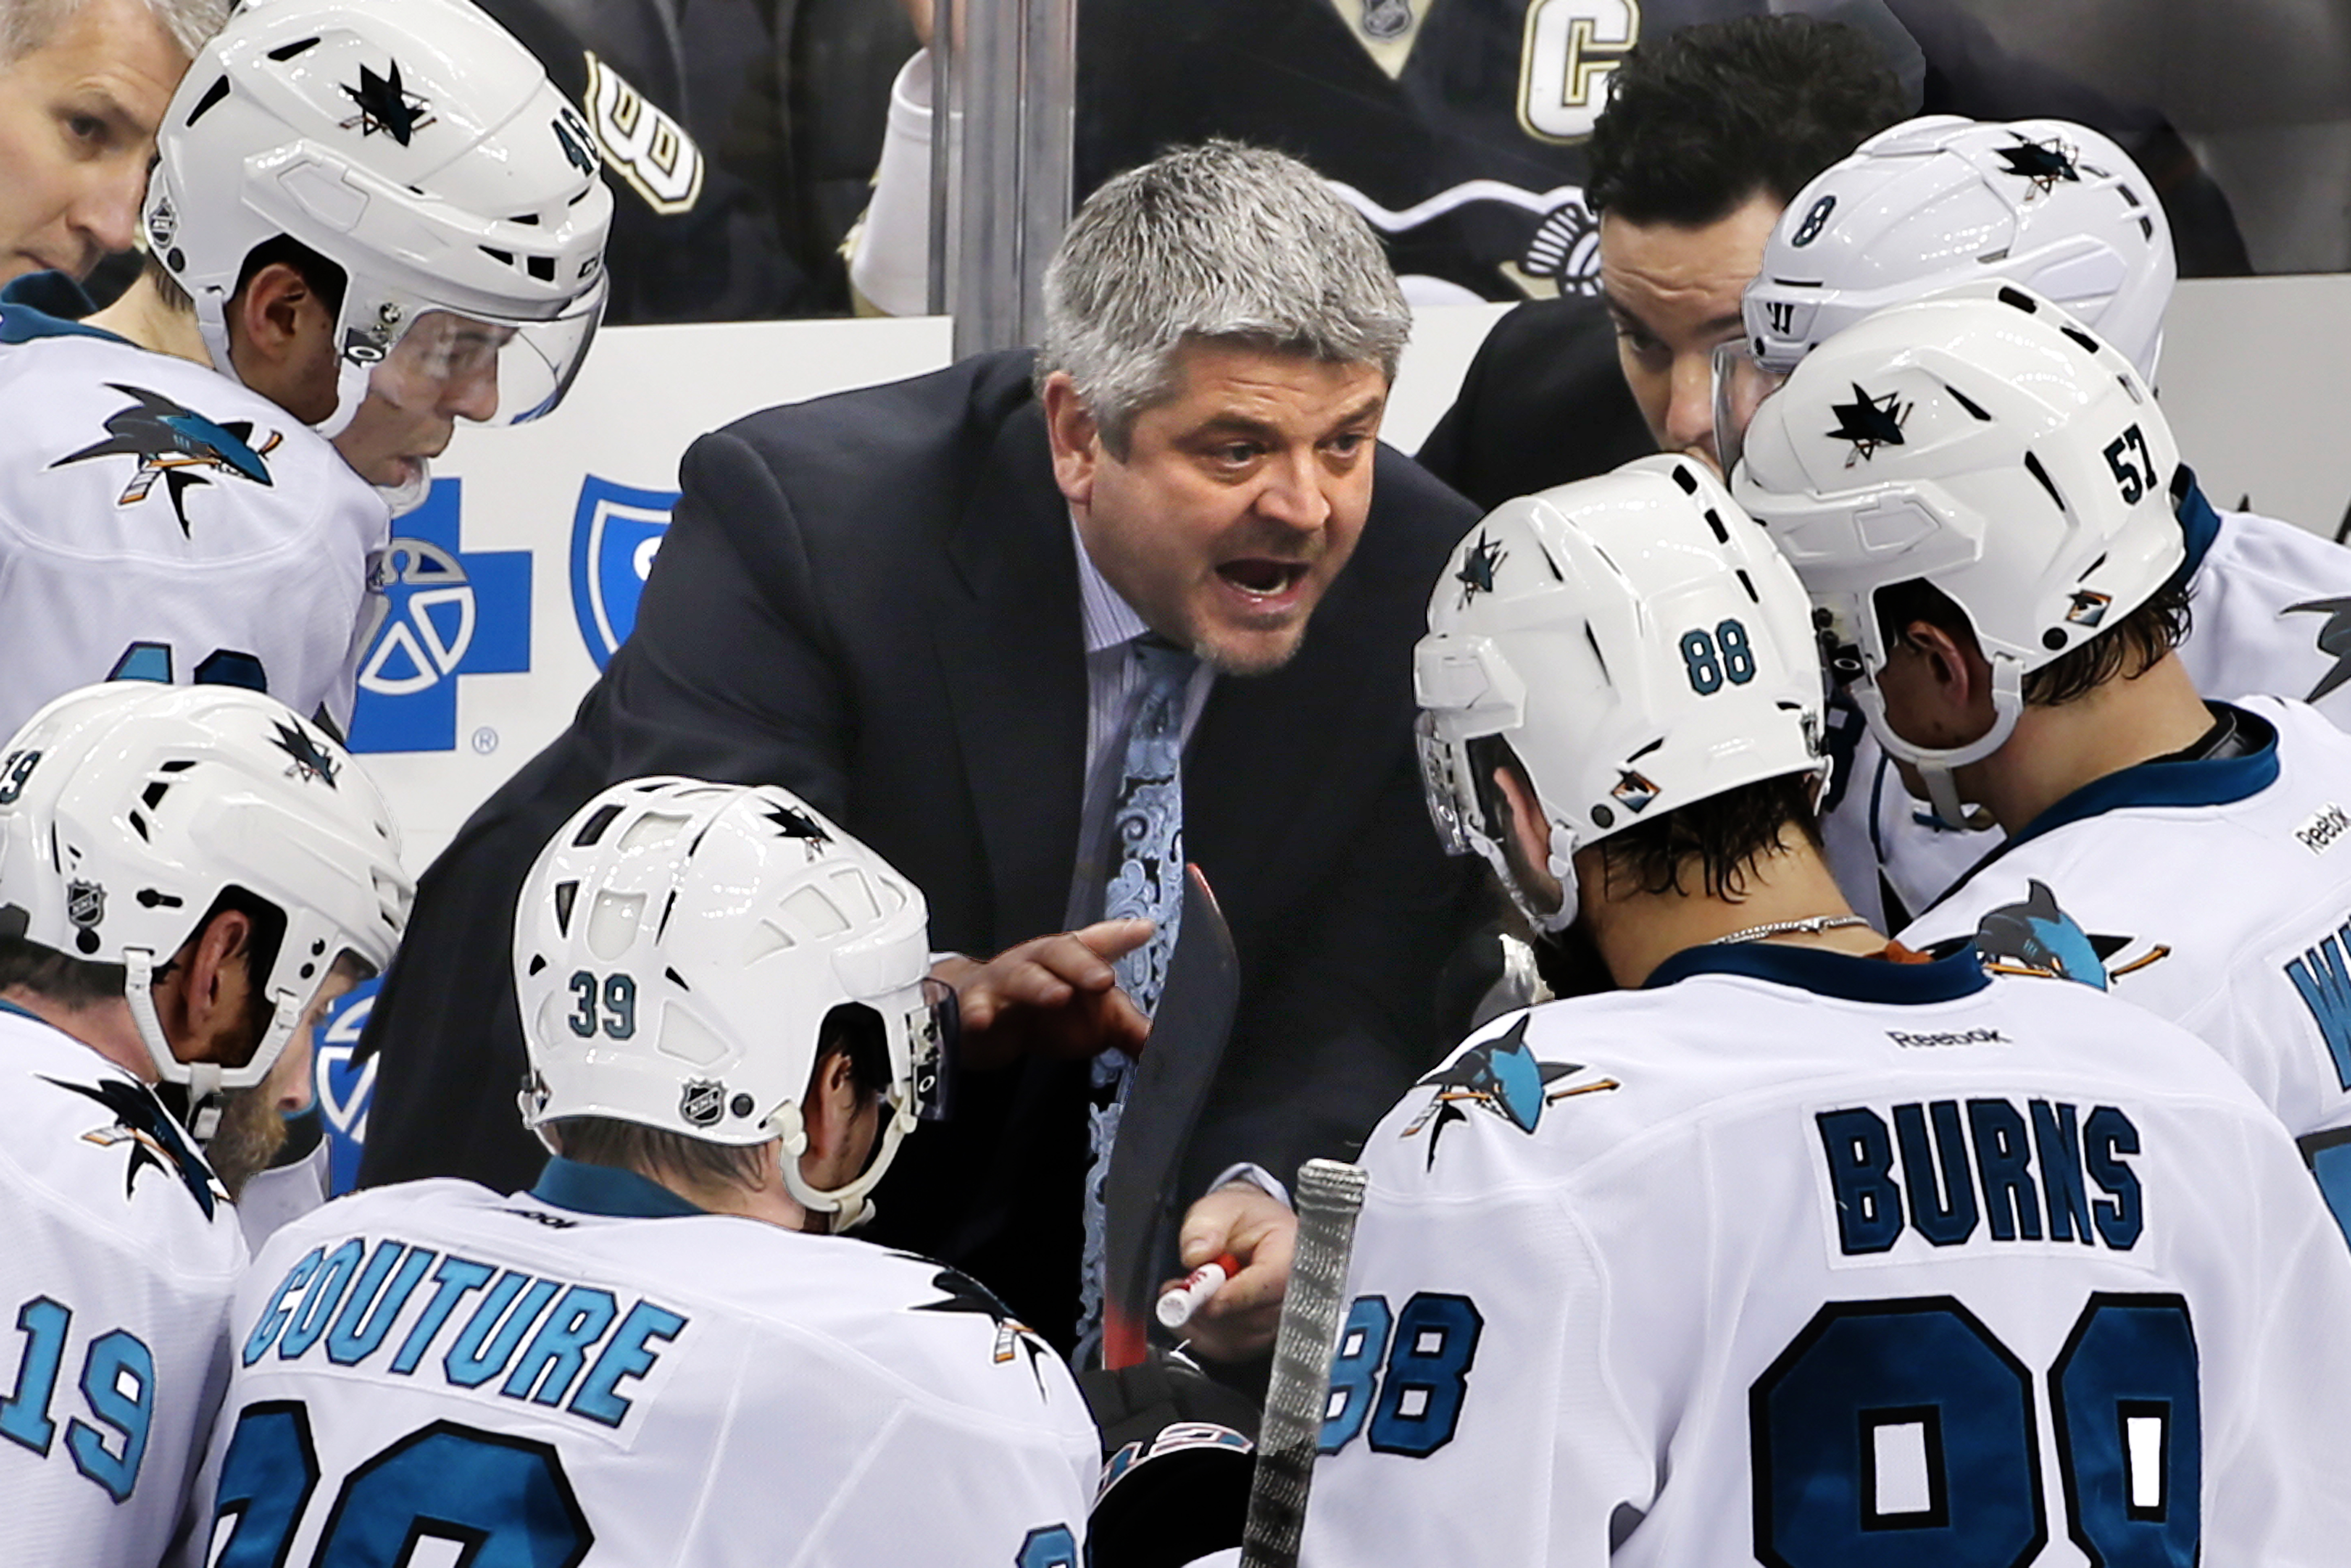 FILE - In this March 29, 2015, file photo, San Jose Sharks head coach Todd McLellan, center, talks to his team during a timeout in the third period of an NHL hockey game against the Pittsburgh Penguins in Pittsburgh. McLellan has been picked as head coach